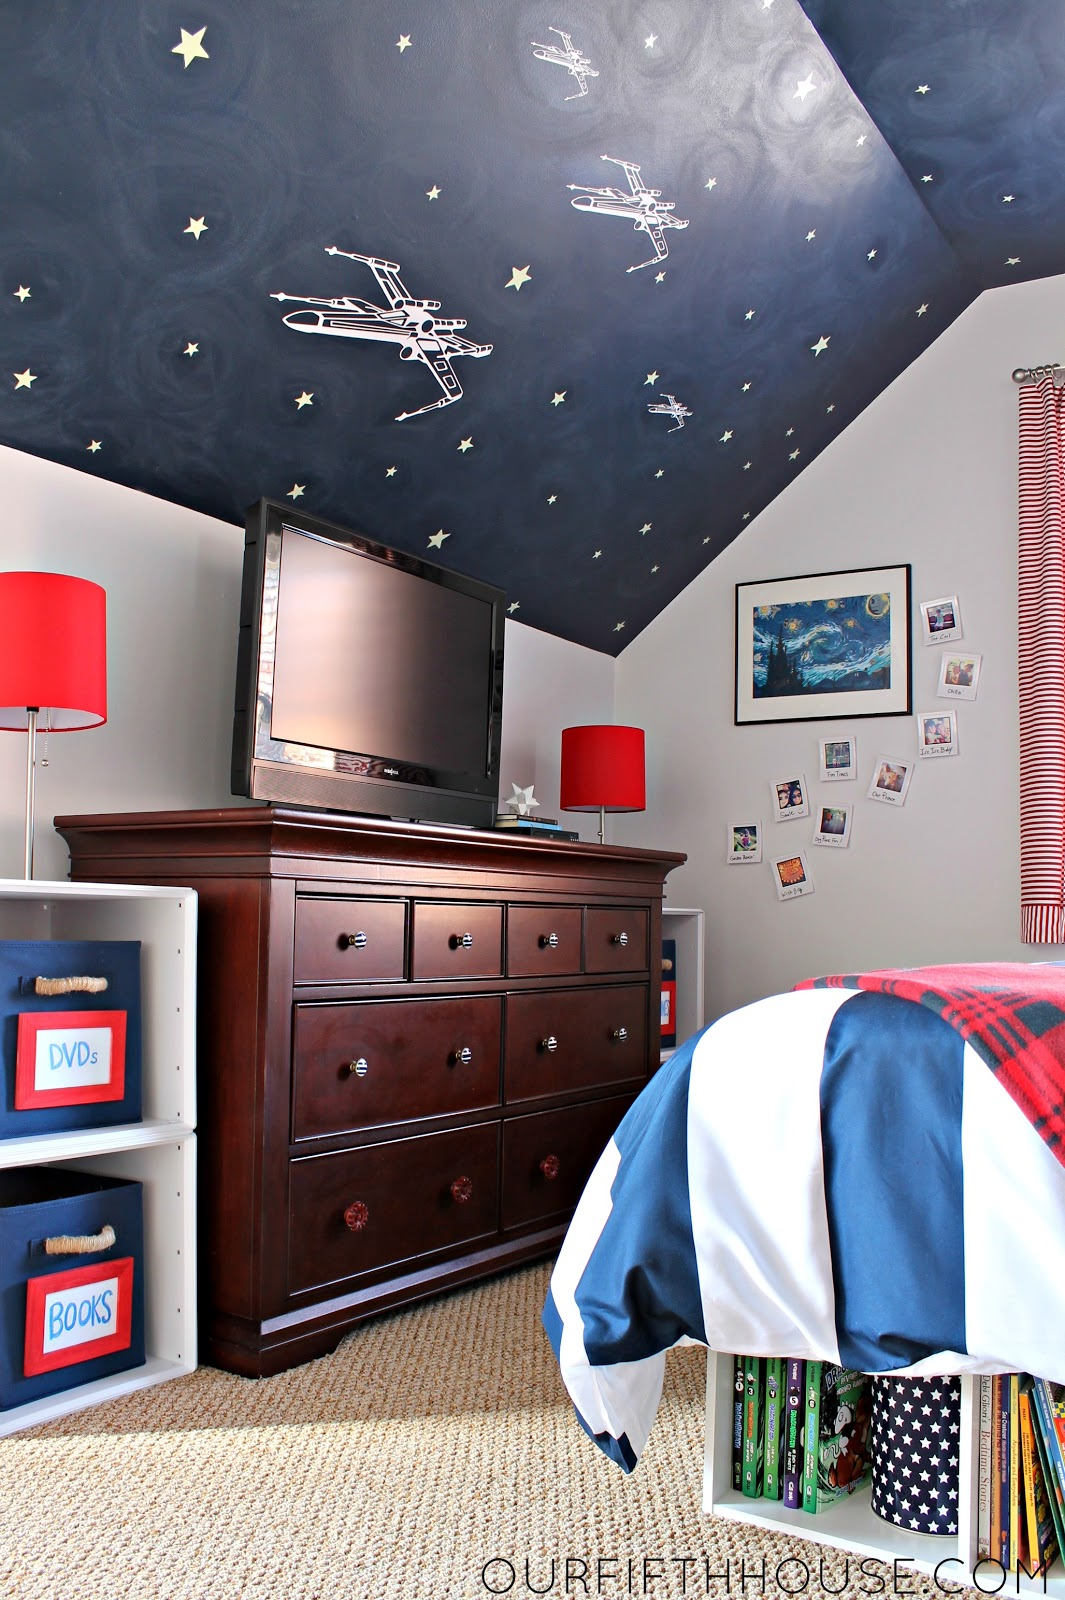 10 Year Old Bedroom Ideas Photo 4 Design Your Home